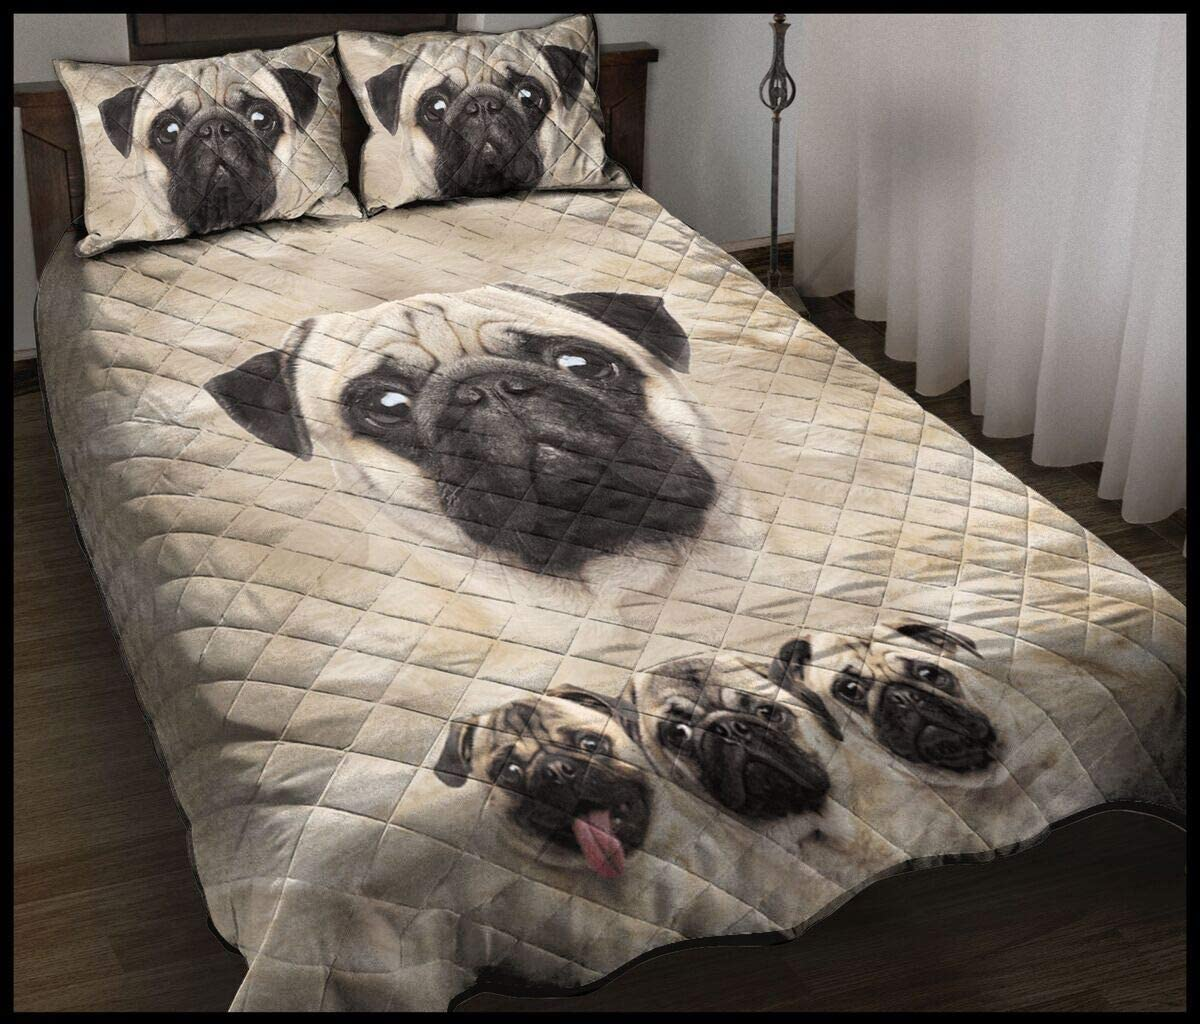 Personalized Awesome Black and White Quilt Dog Pug Family New Manufacturer regenerated product Free Shipping